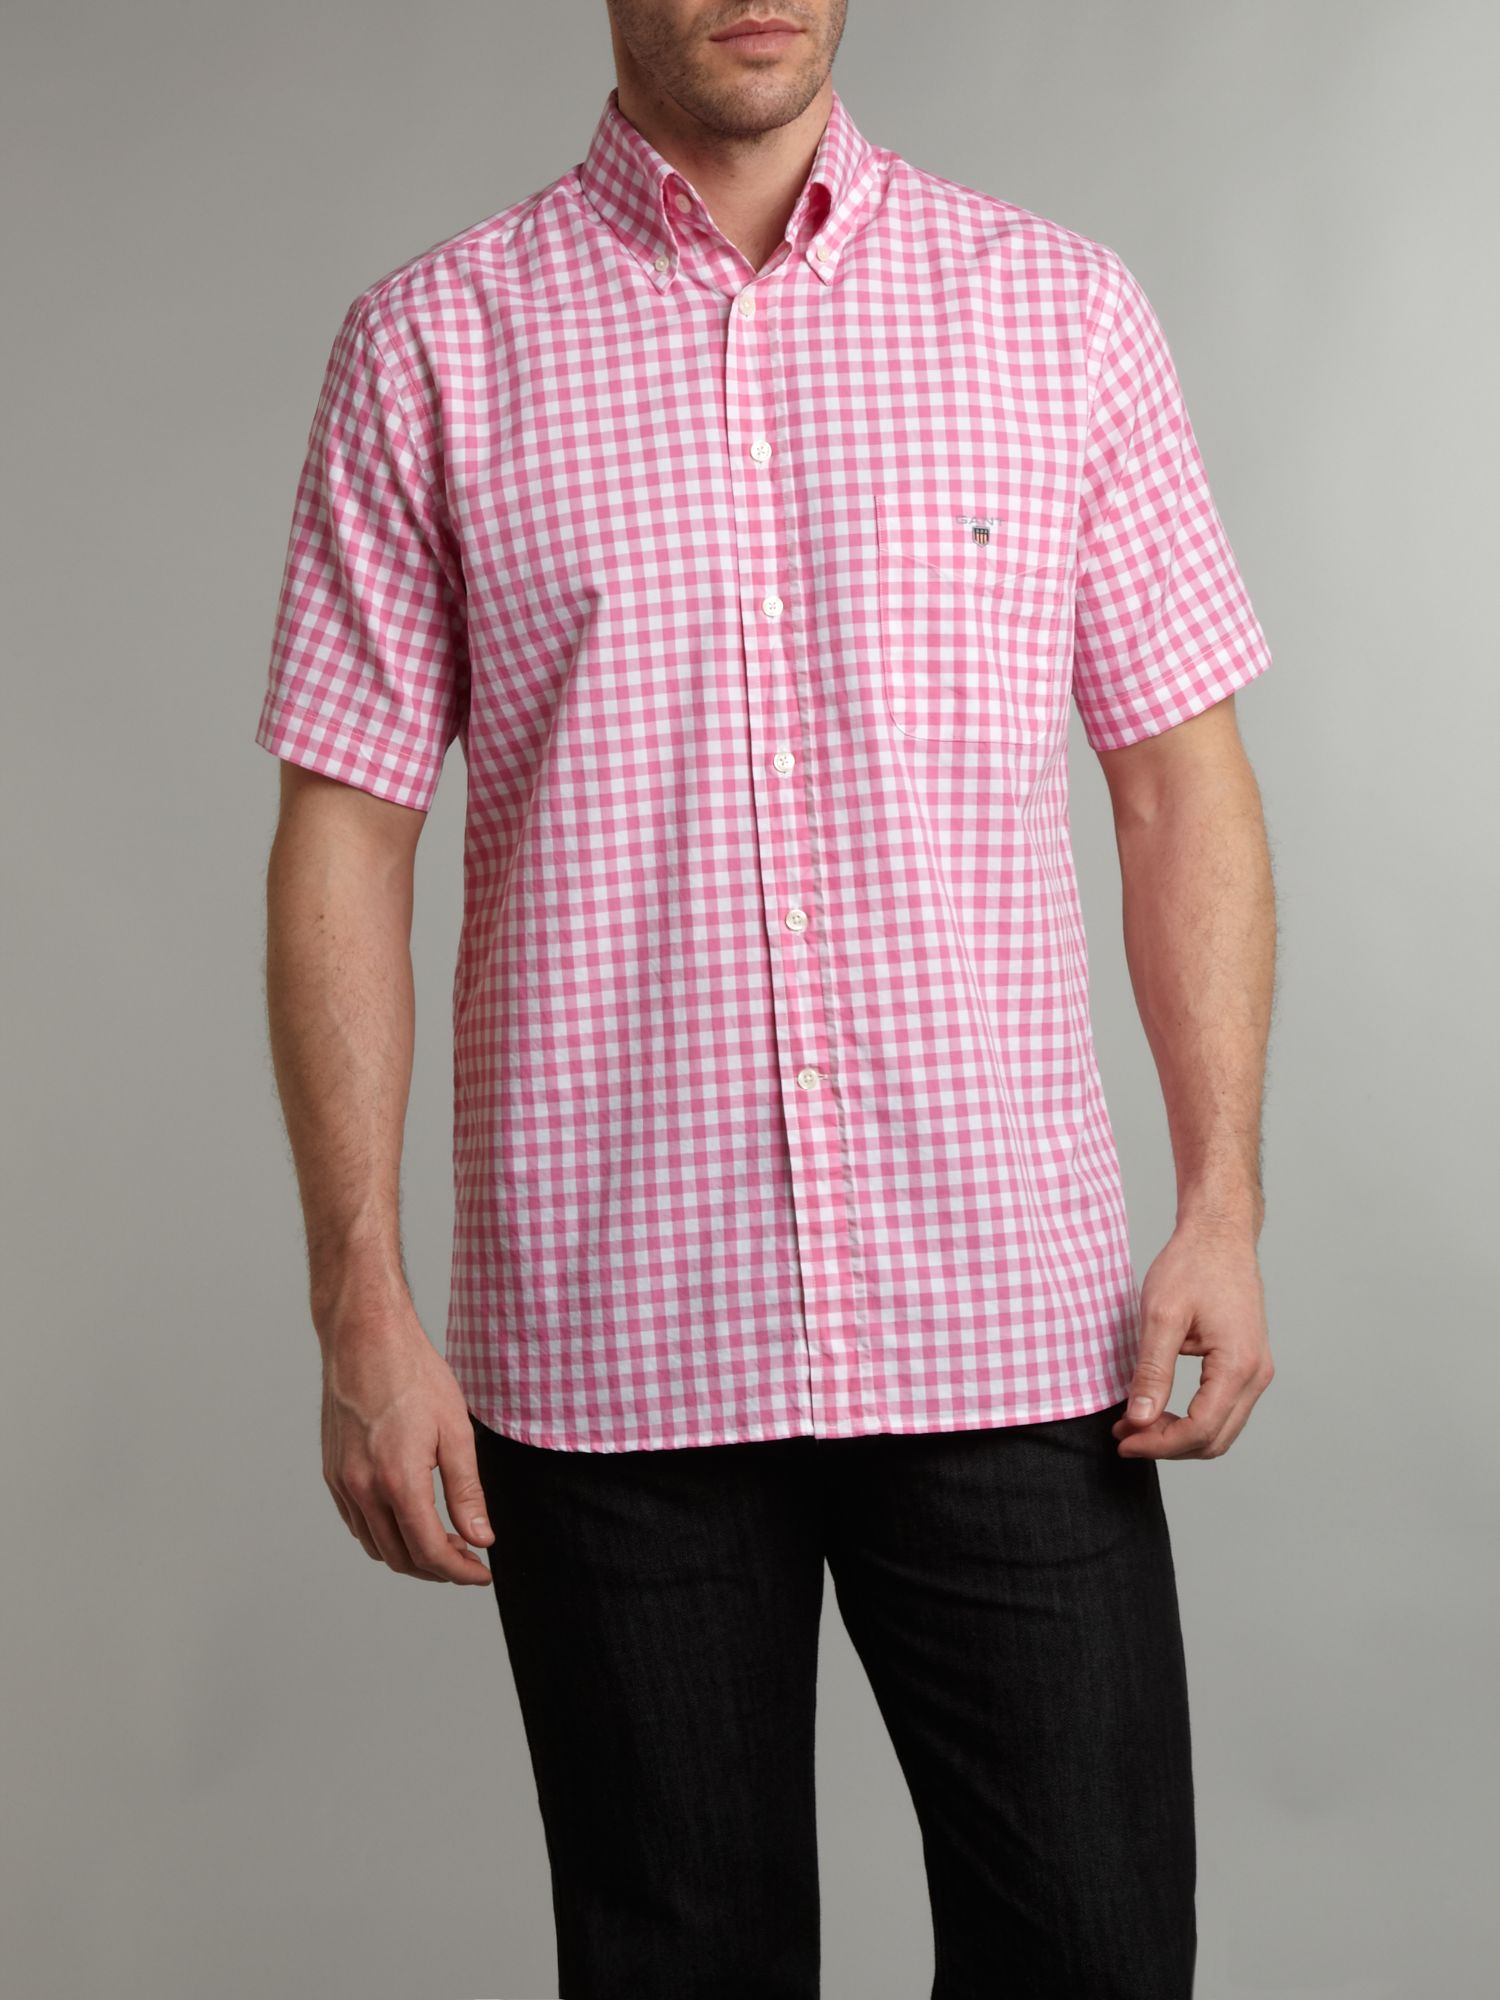 Short Sleeve oxford gingham shirt